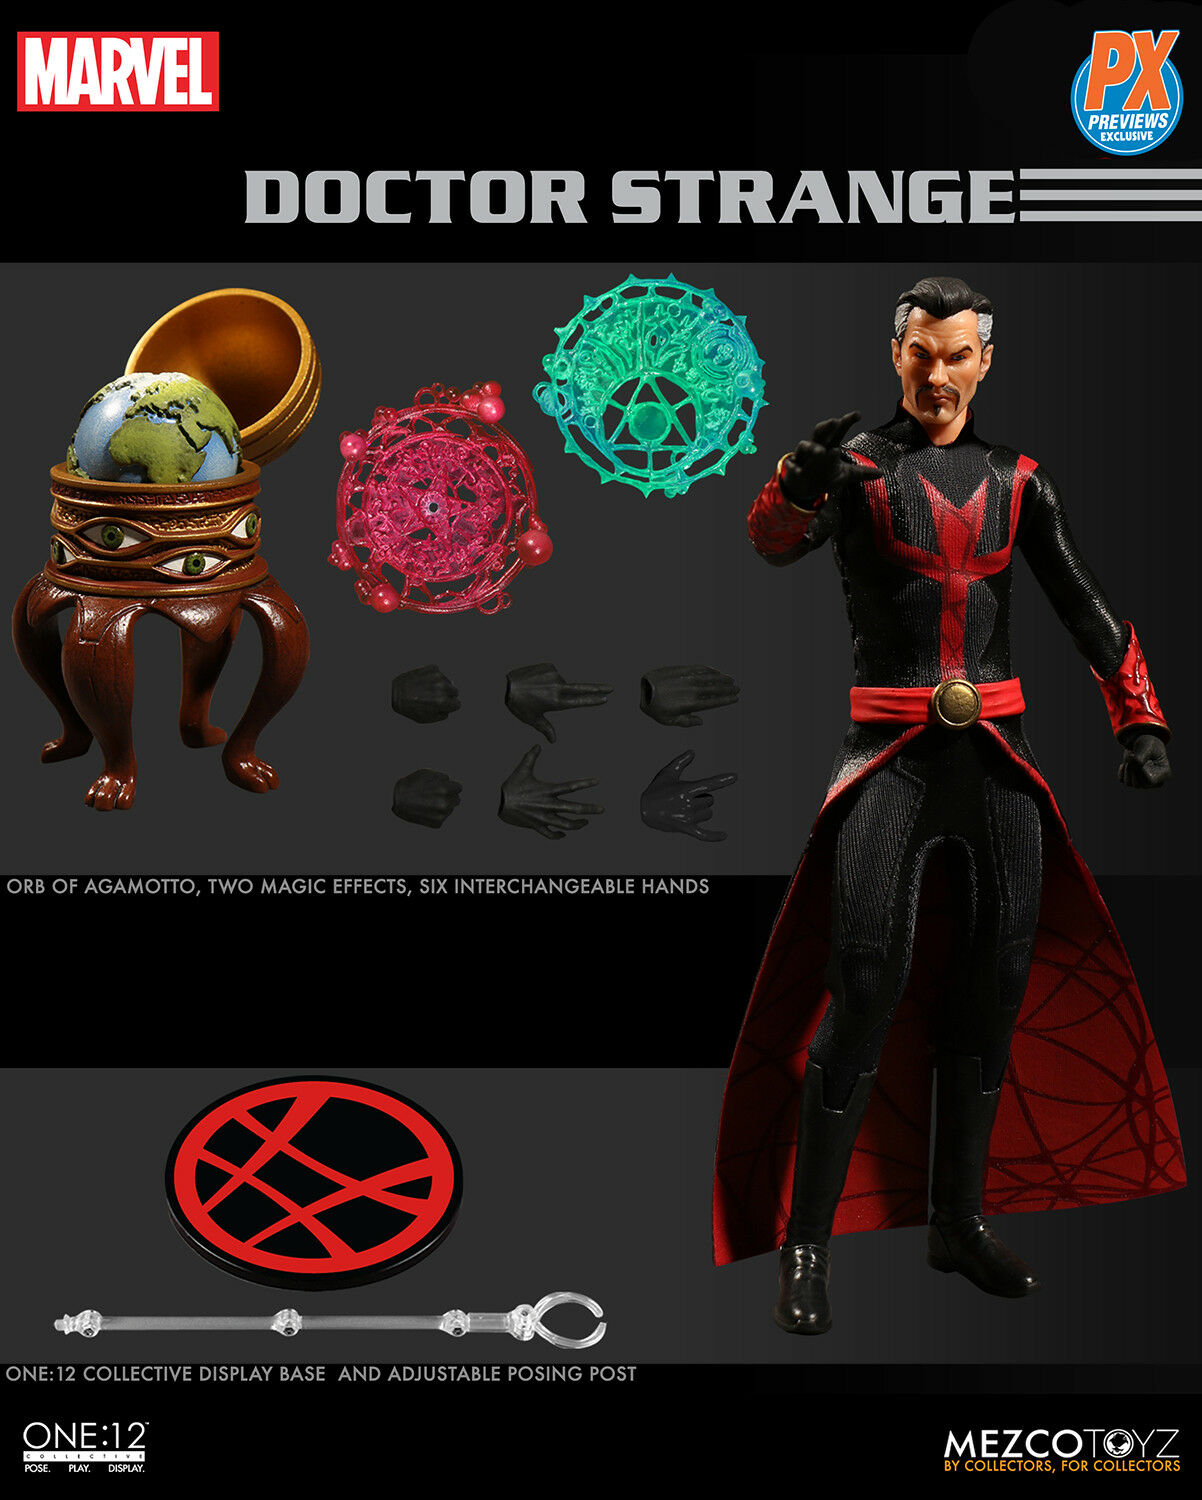 MEZCO DEFENDERS DOCTOR STRANGE PX EXCLUSIVE